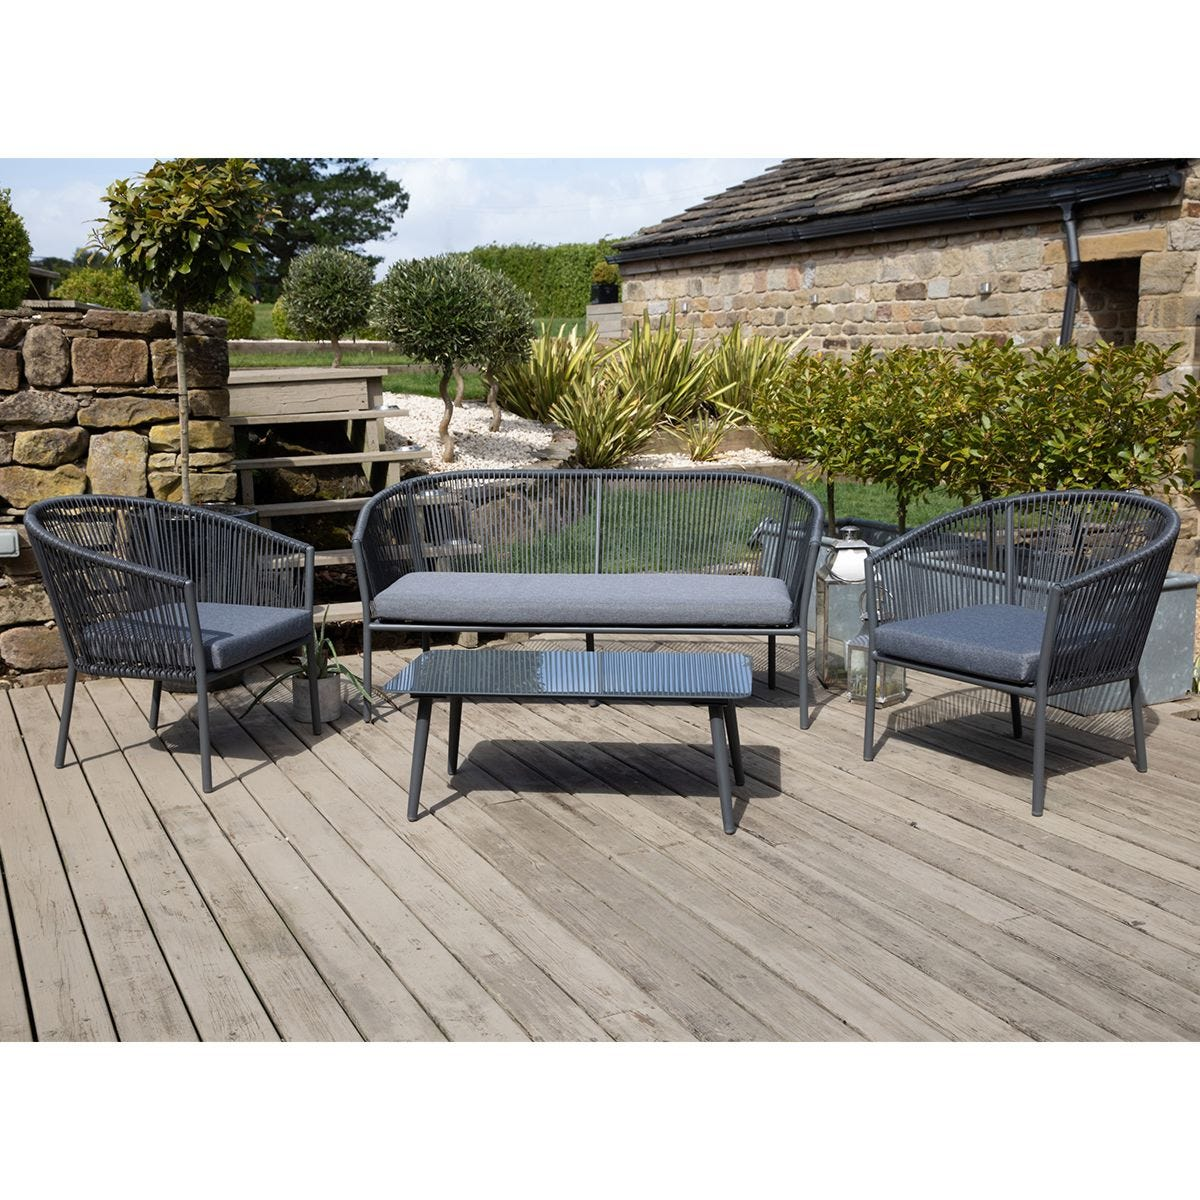 Pacific Lifestyle Limoges Stackable 4 Seater Lounge Set - Grey